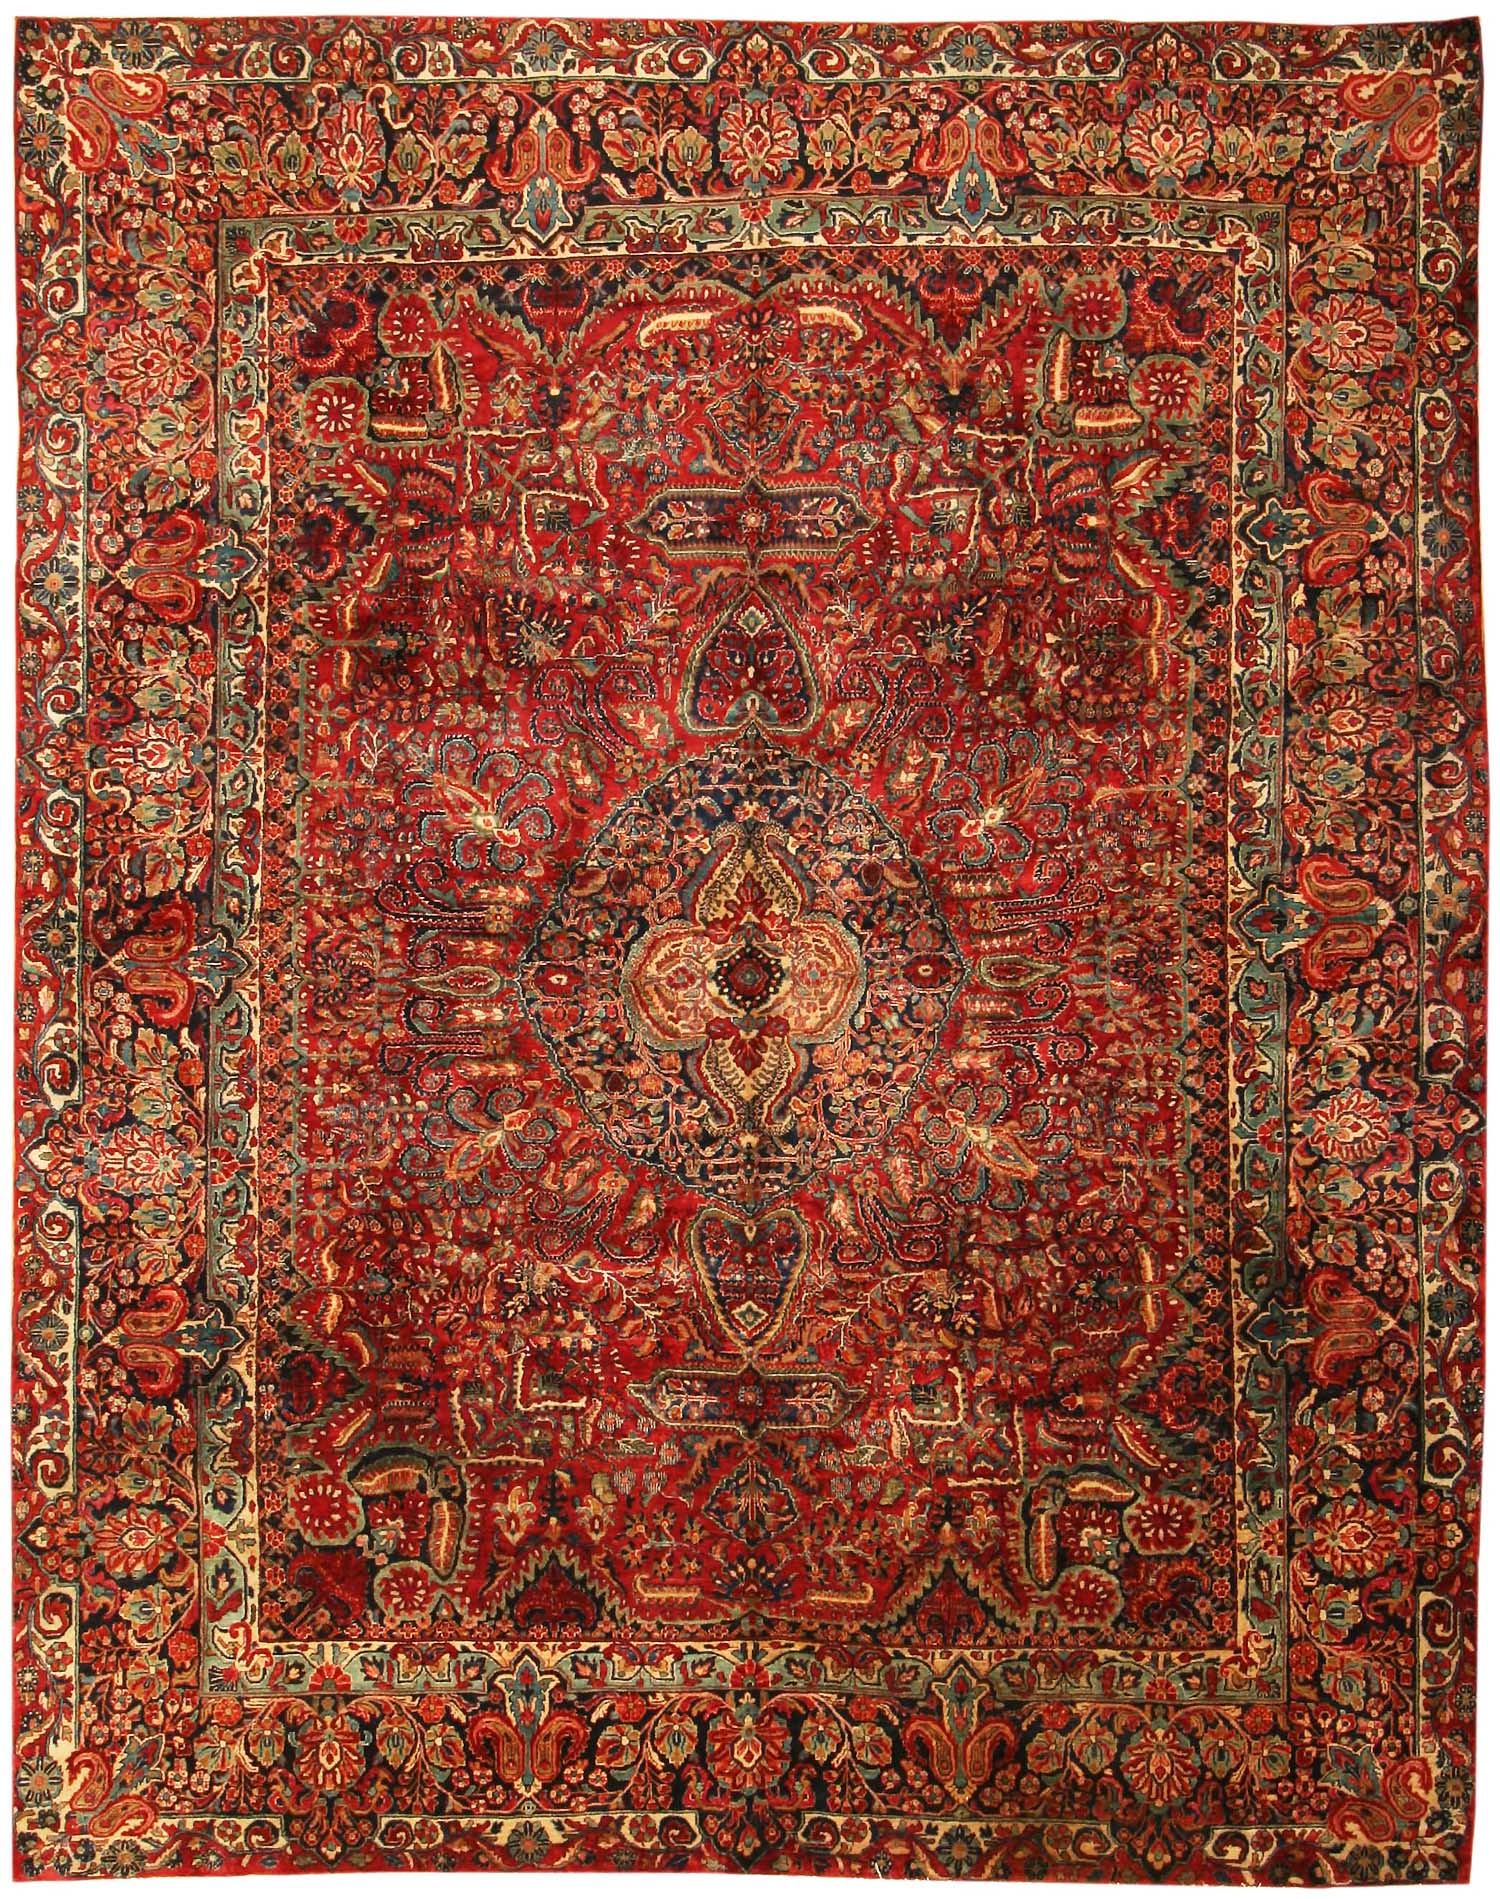 Elegant Antique Sarouk Persian Rug 43559 - by Nazmiyal - for den/study vintage persian rugs